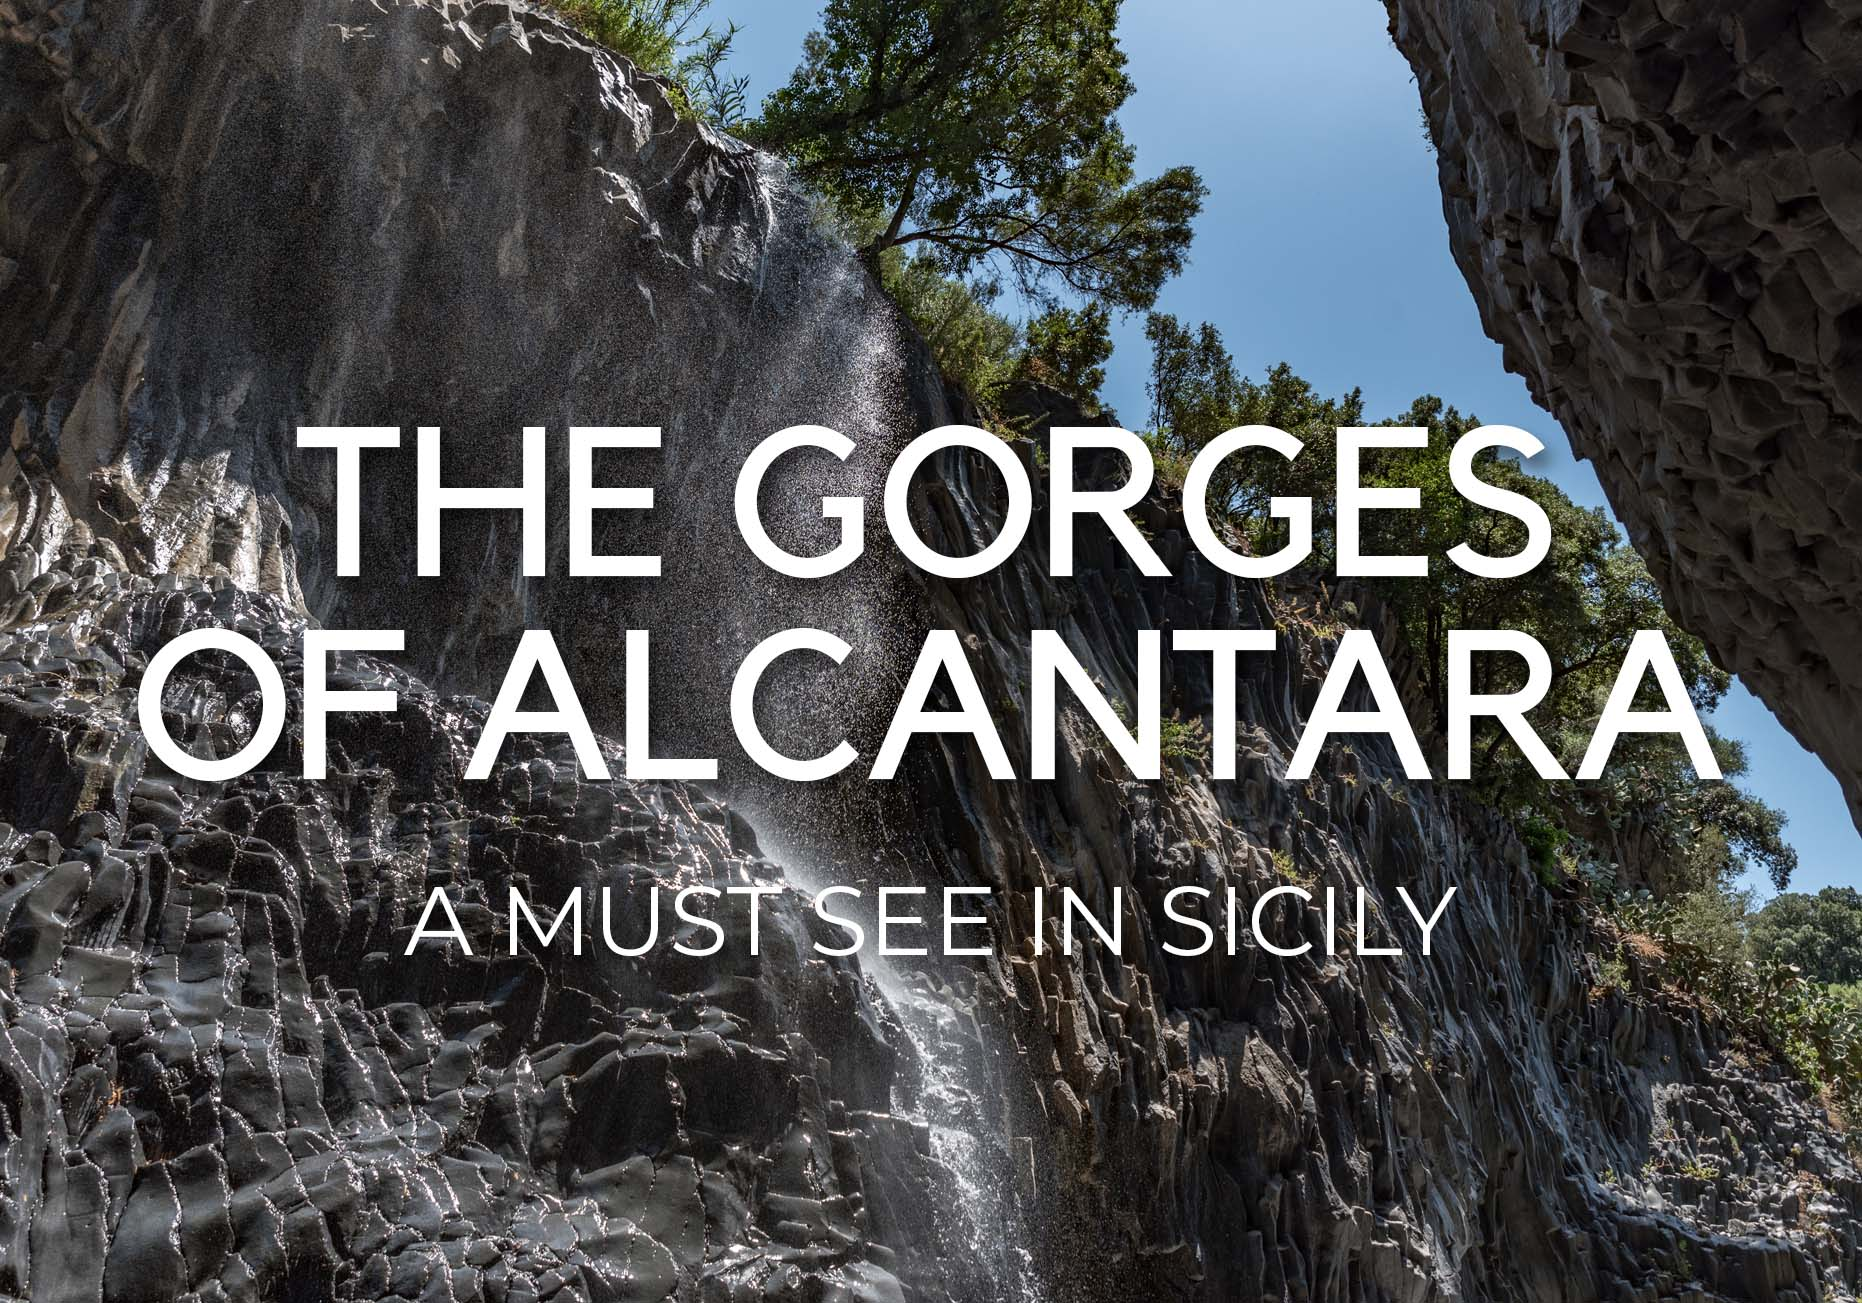 THE GORGES (GOLE) OF ALCANTARA – A MUST SEE IN SICILY